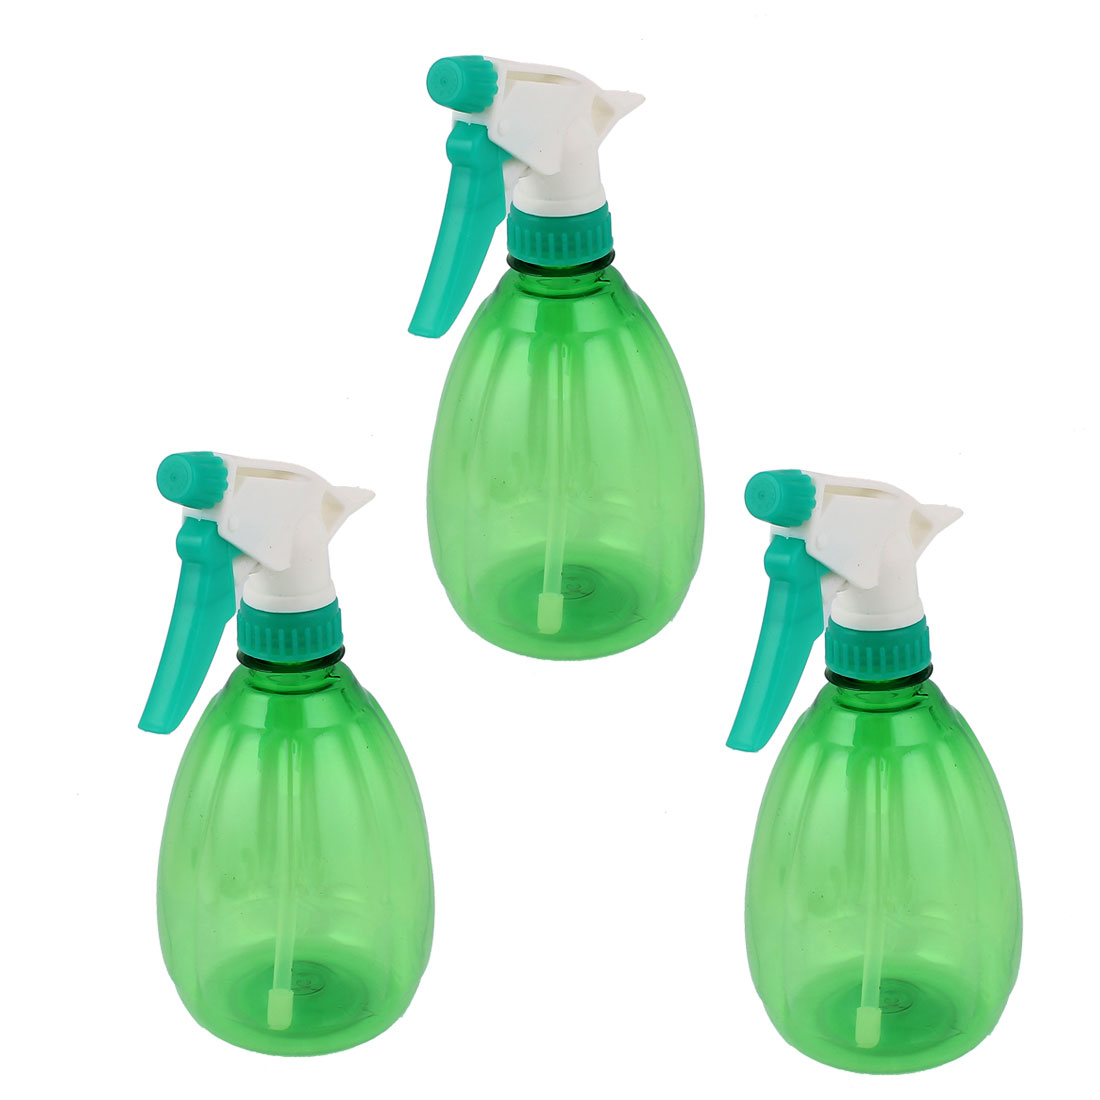 3pcs 500ml Nozzle Head Hand Trigger Water Sprayer Mist Spray Bottle Green